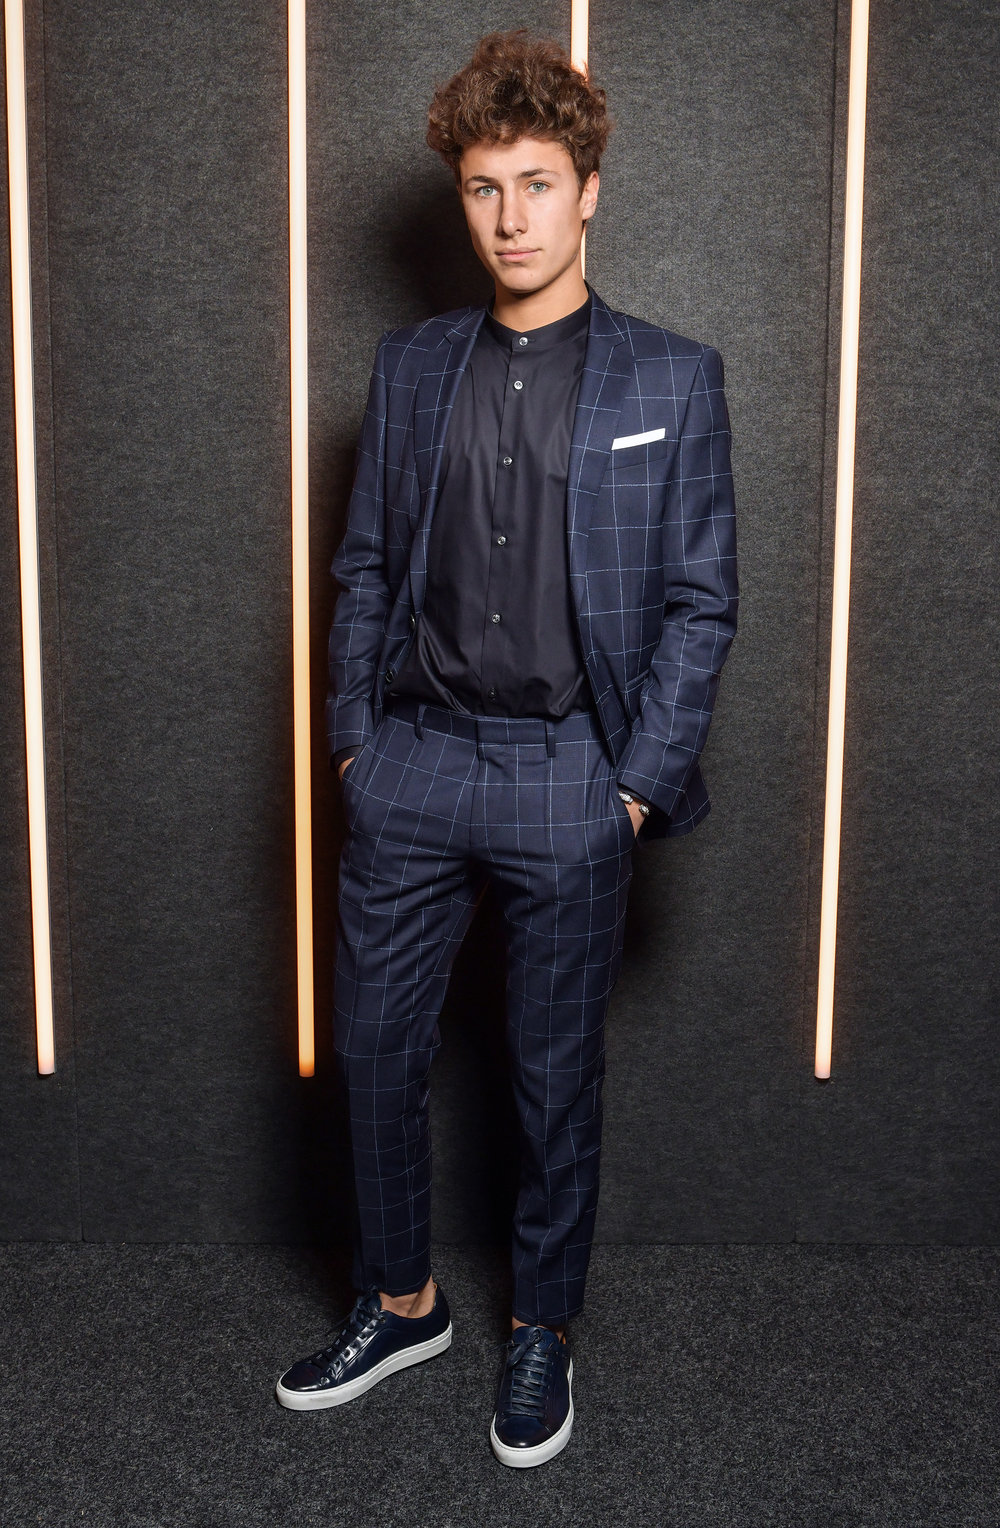 Juanpa Zurita backstage at the BOSS Fall/Winter 2019 show at Basketball City during New York Fashion Week on Wednesday, February 13, in New York City. Photography, Courtesy of BOSS.